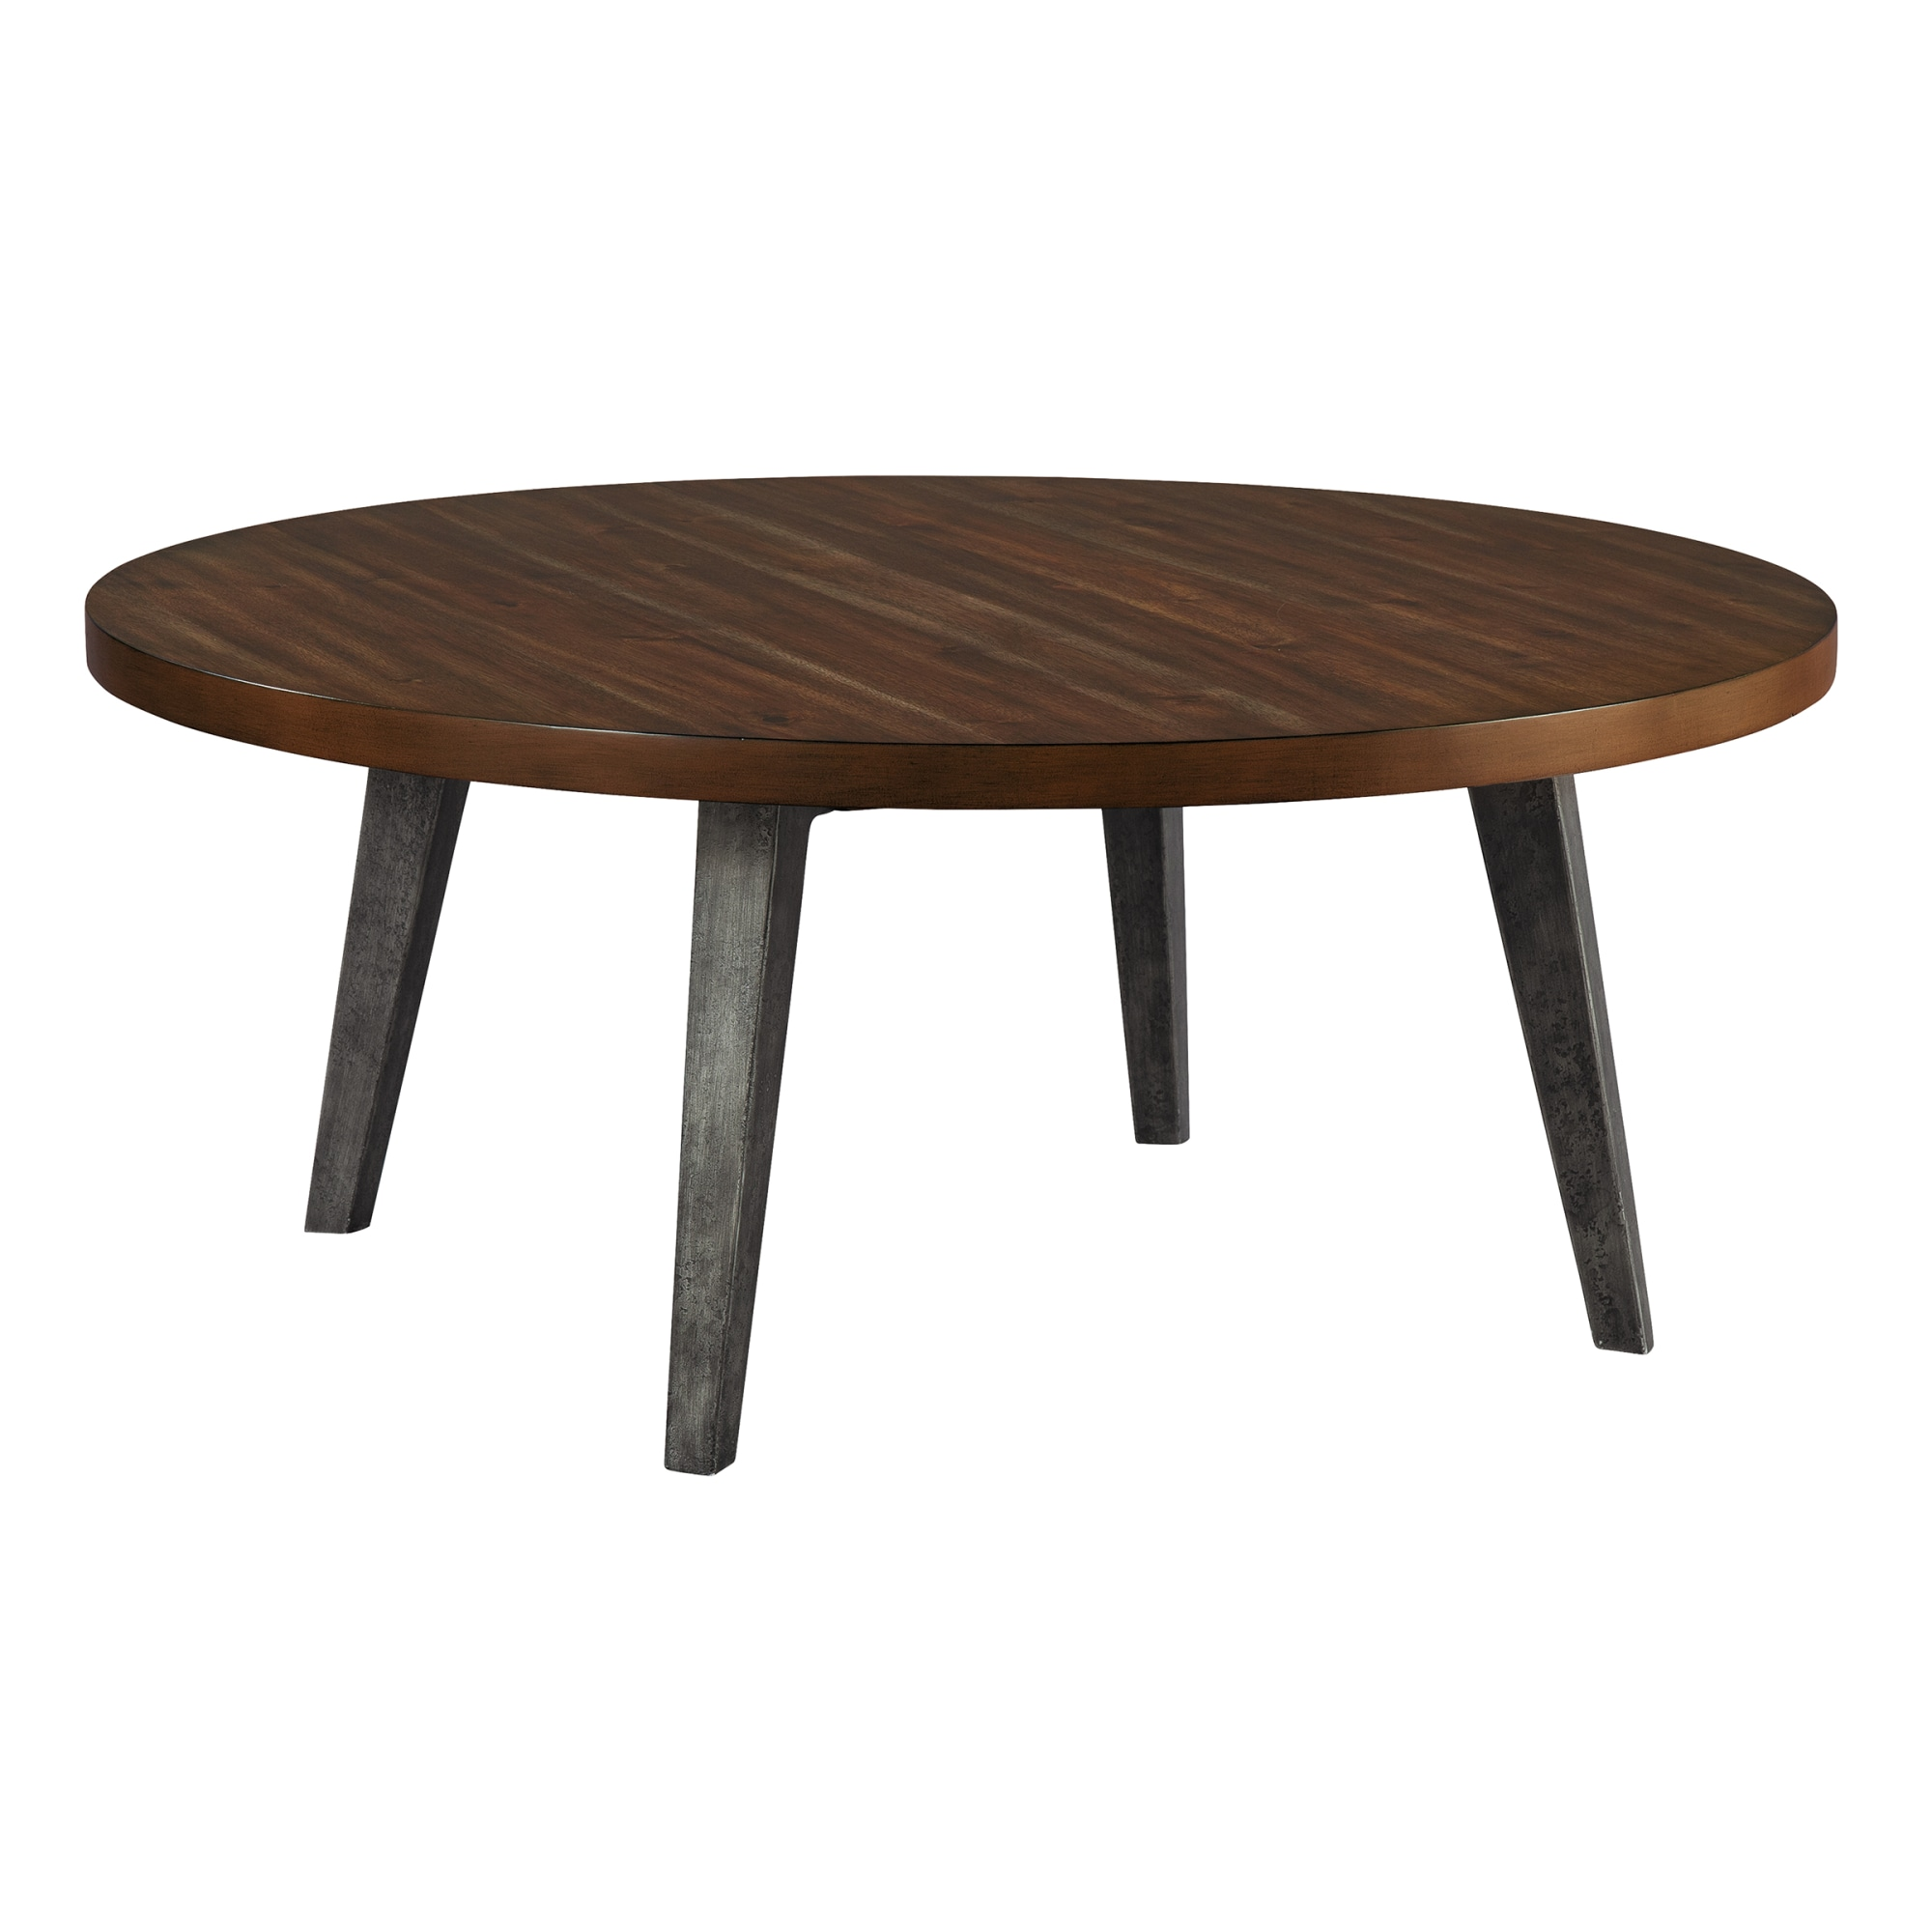 Image for 2-4305 Monterey Point Splayed Leg Round Coffee Table from Hekman Official Website